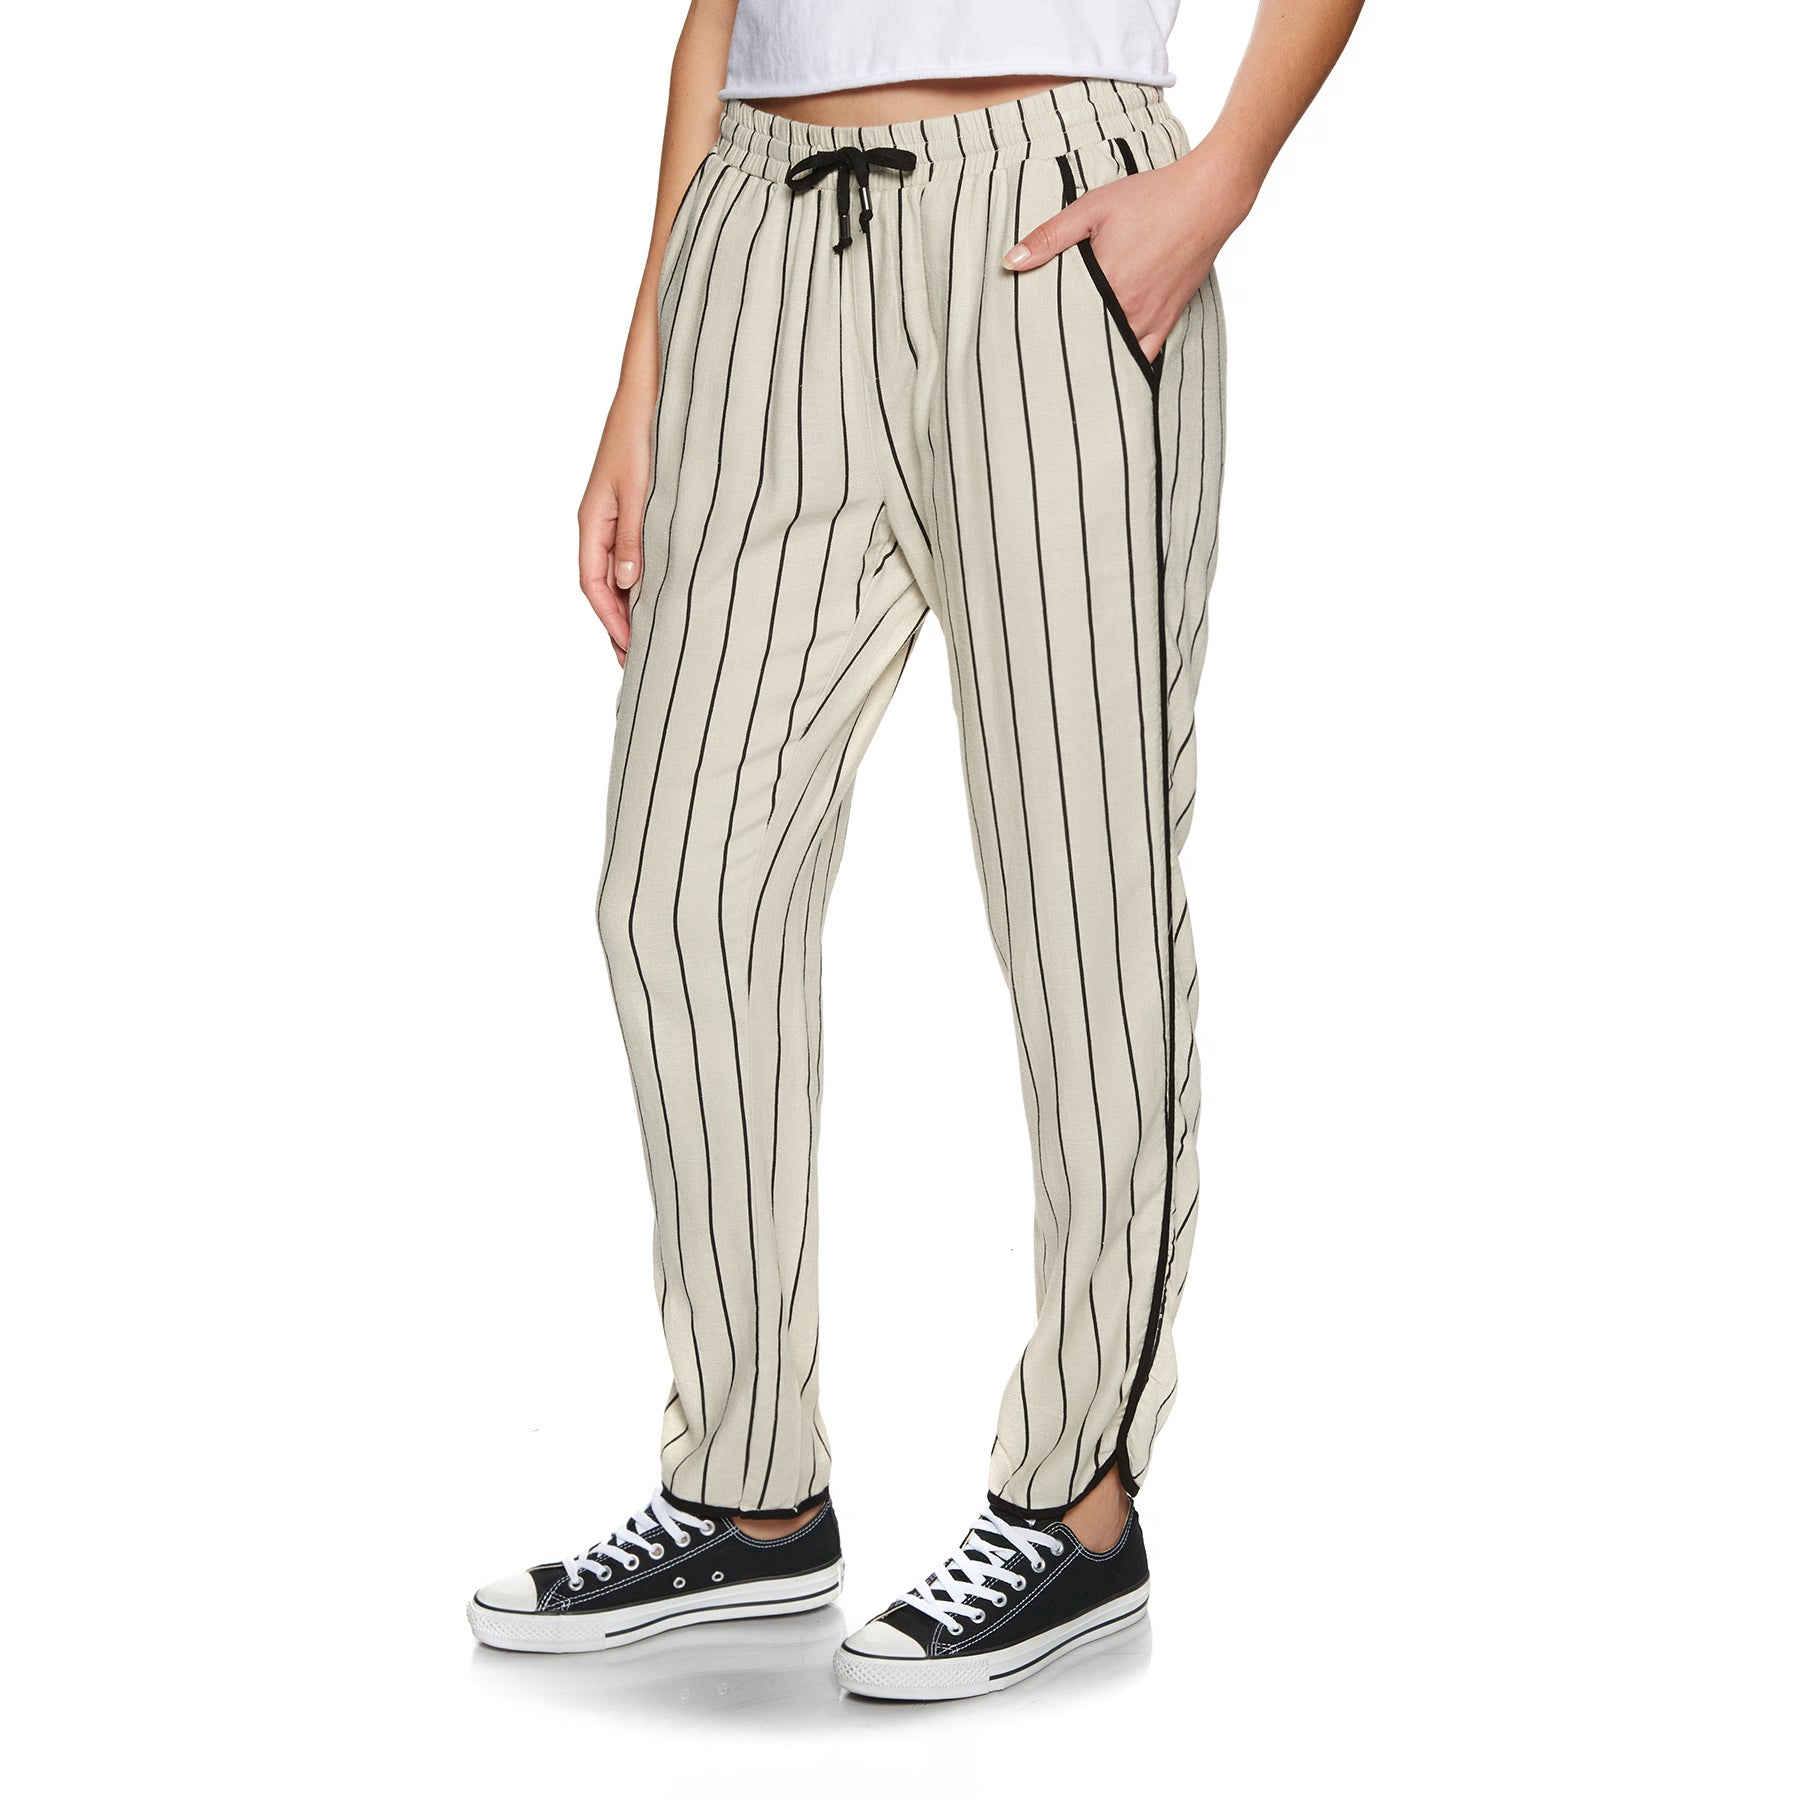 SWELL Bay Slim Fitted Womens Trousers - Stripe